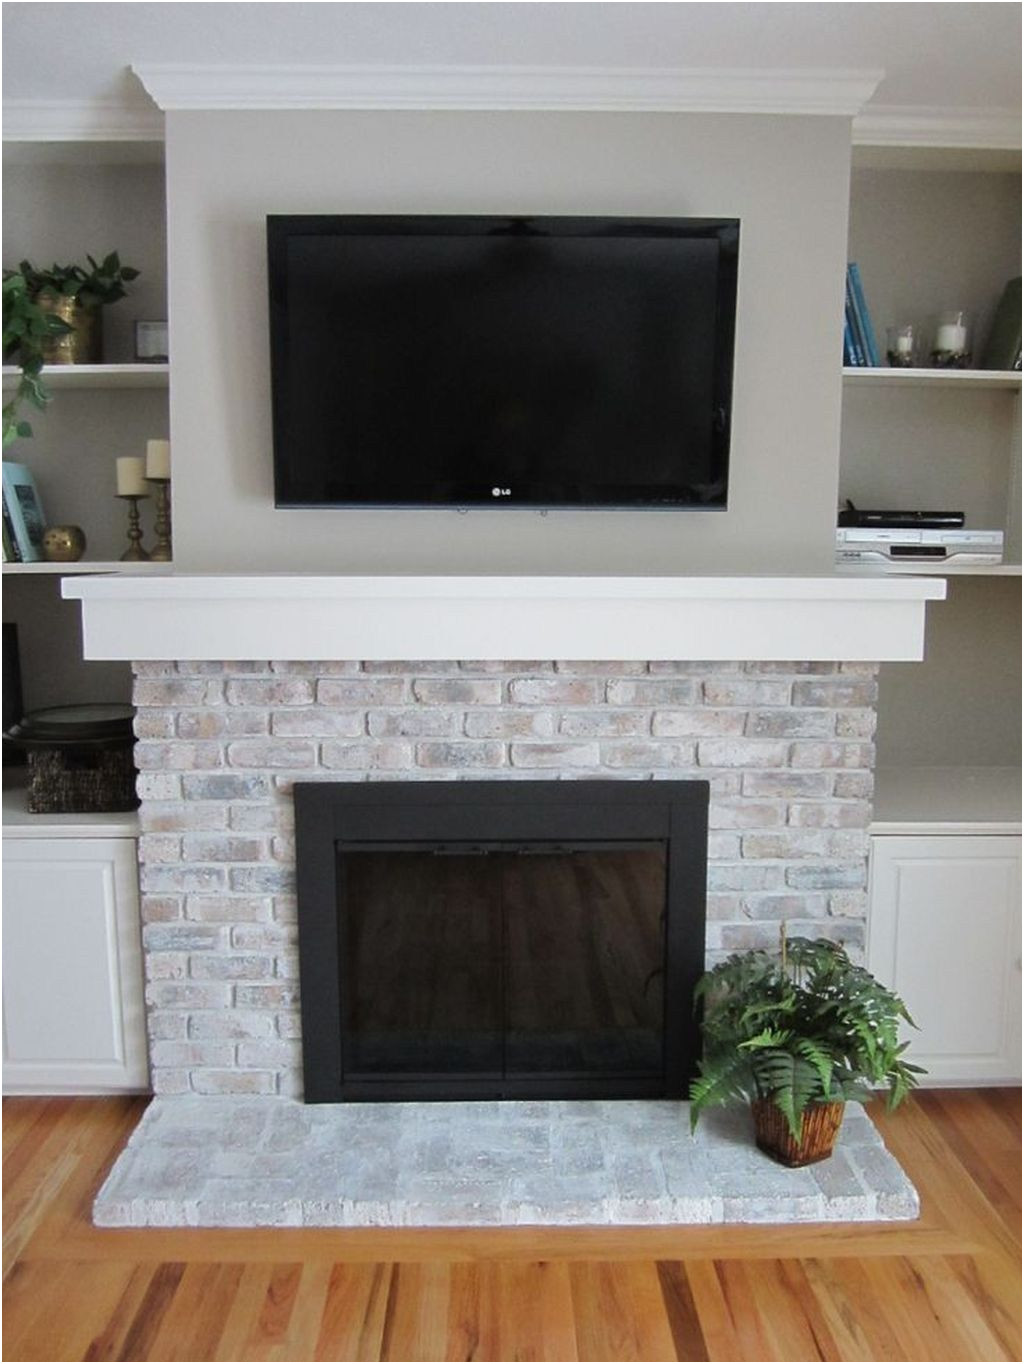 New Ideas to Paint Fireplace